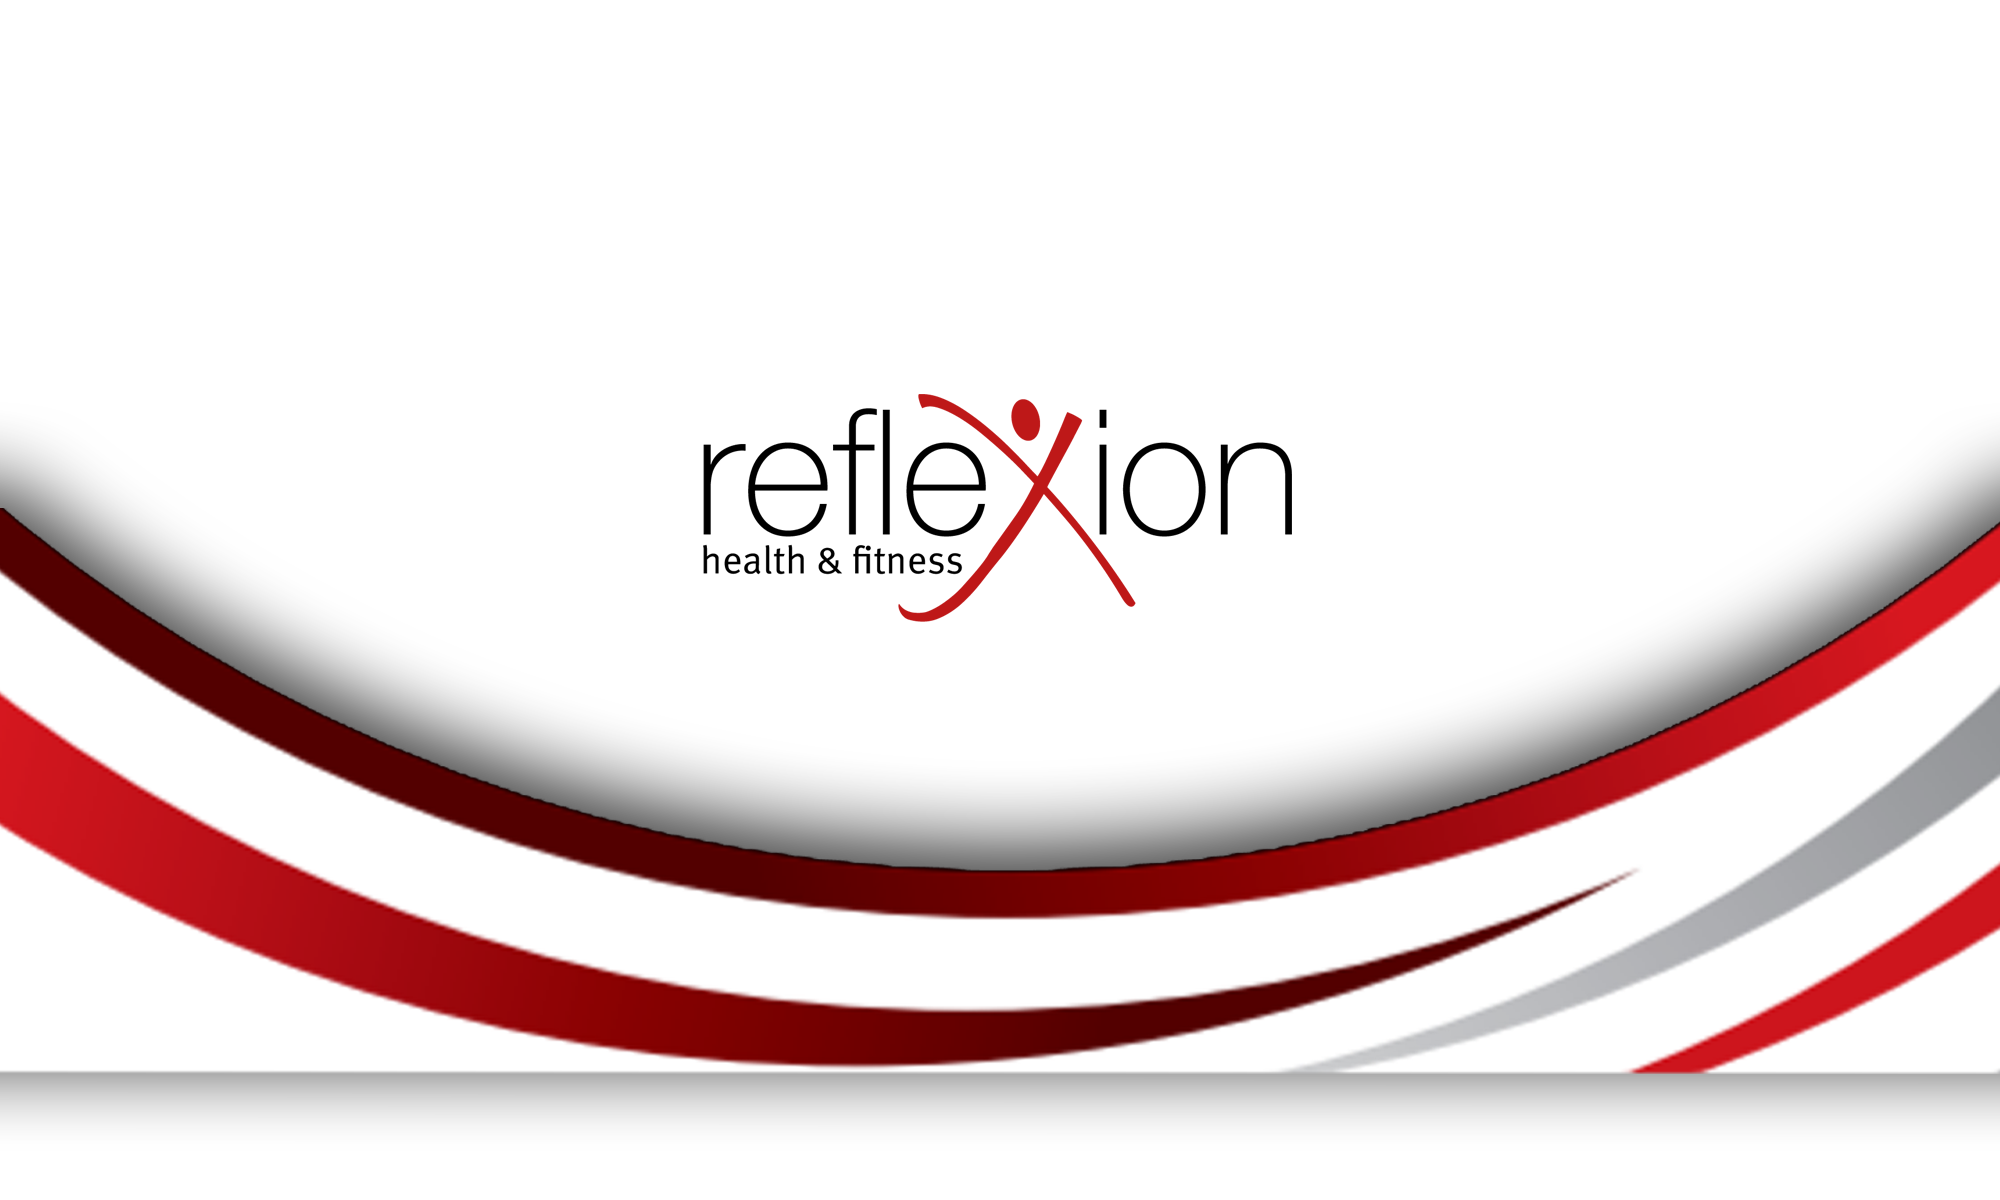 reflexion health and fitness